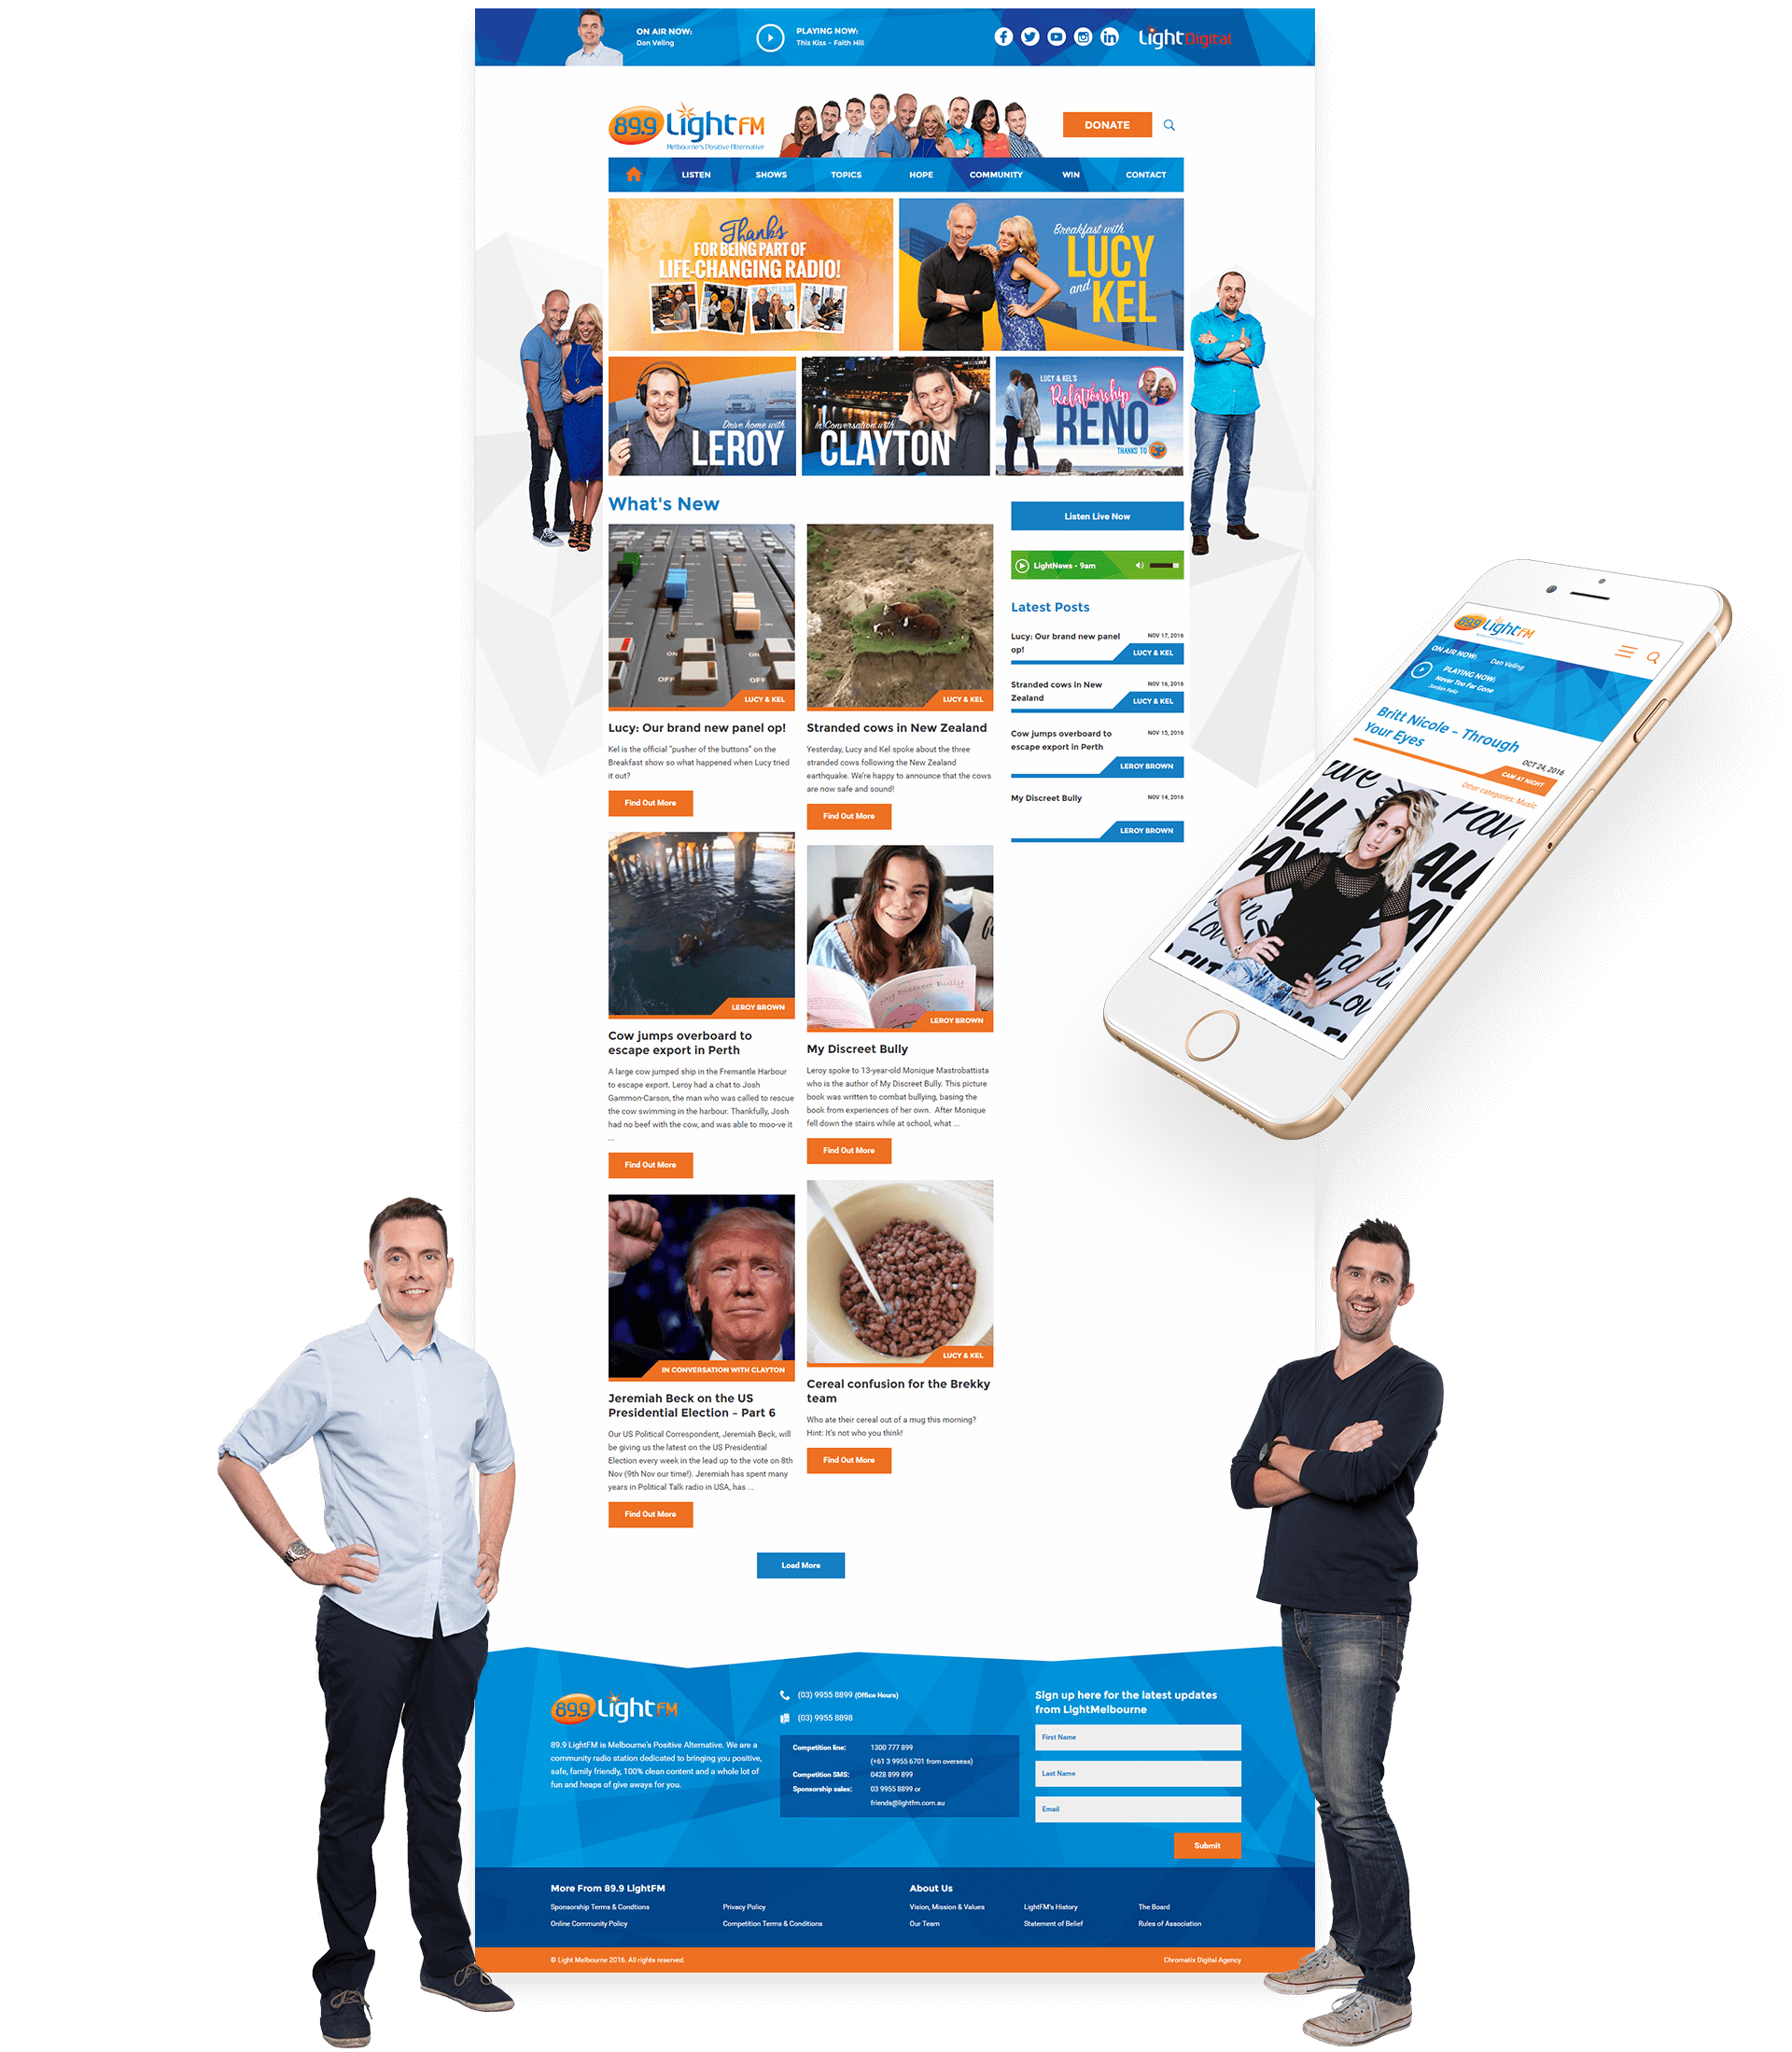 Website design and mobile view and two male hosts